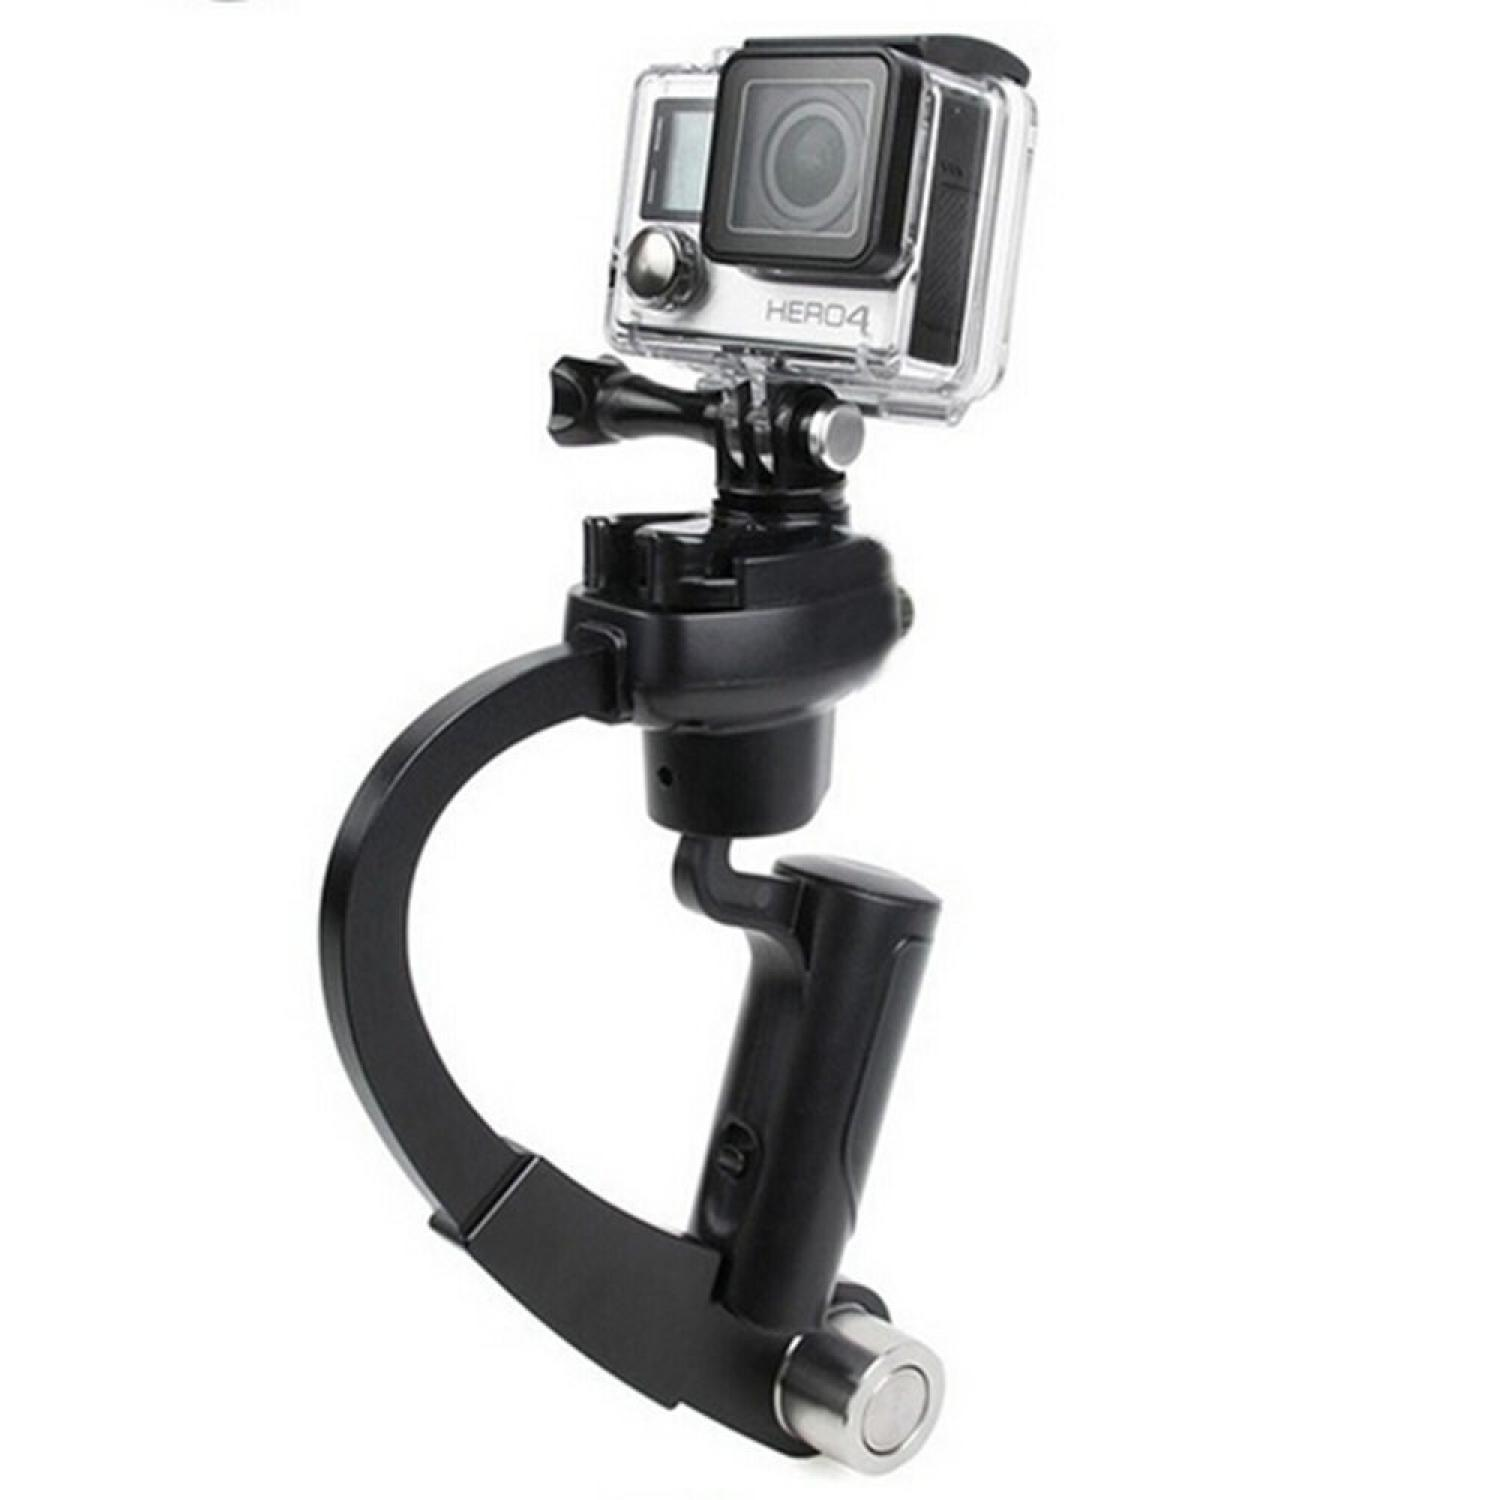 Plastic Handheld Curve Stabilizer for GoPro/Xiaomi Yi/Xiaomi Yi 2 4K Super Smooth Gimbal Pegangan Handle Steadycams Aksesoris Kamera Aksi Action Camera Accessories Perlengkapan Audio Video Vlog Steady Comfortable Grip s2682 - Black